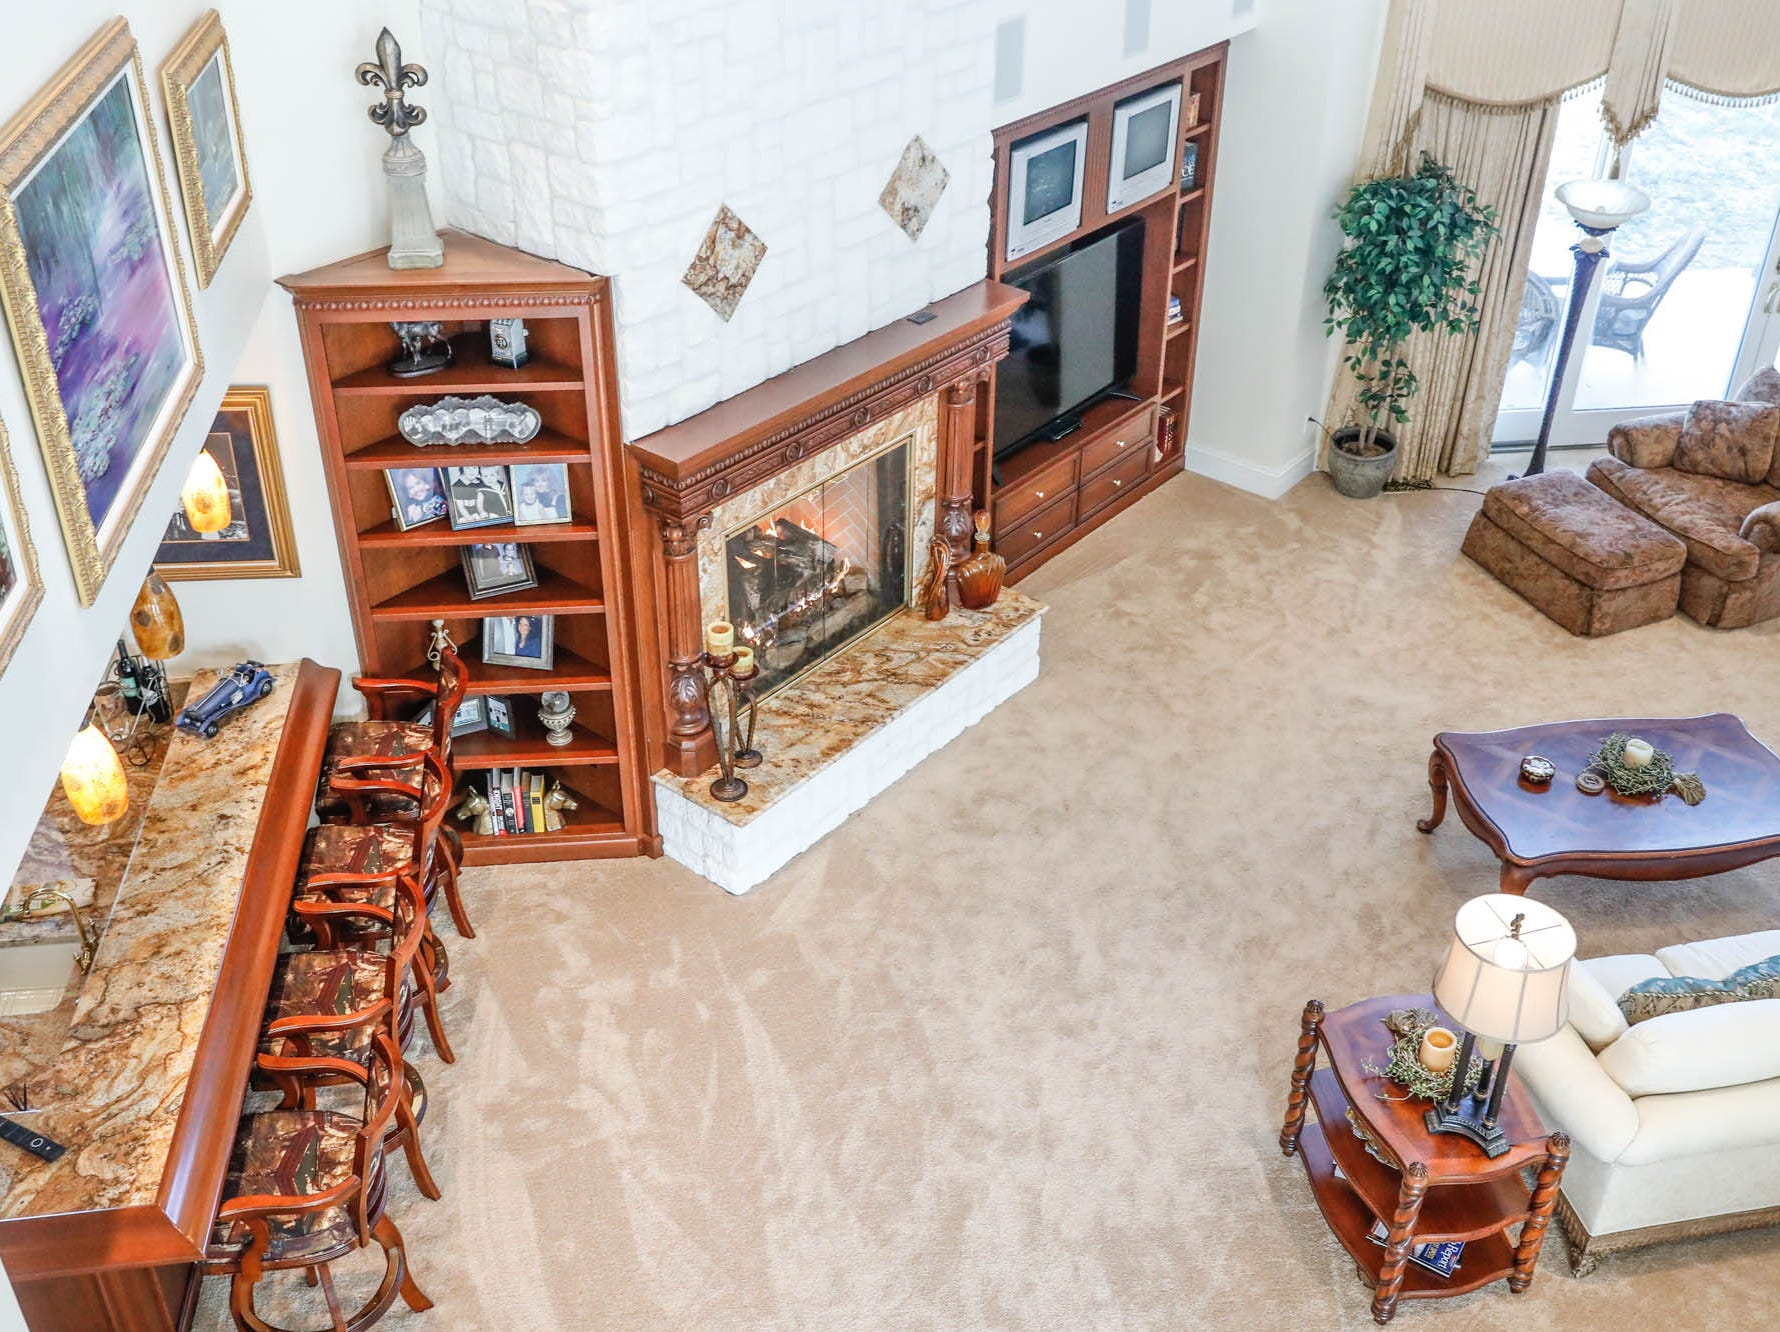 A loft provides a birds-eye view of an open floor plan living room at a Greenwood home up for sale at 1216 Stone Ridge Court, Greenwood, Ind. on Wednesday, Jan. 30, 2019. The home features 8,234 square feet, four bedrooms, two master suites, a 10 car garage, and an exercise room.